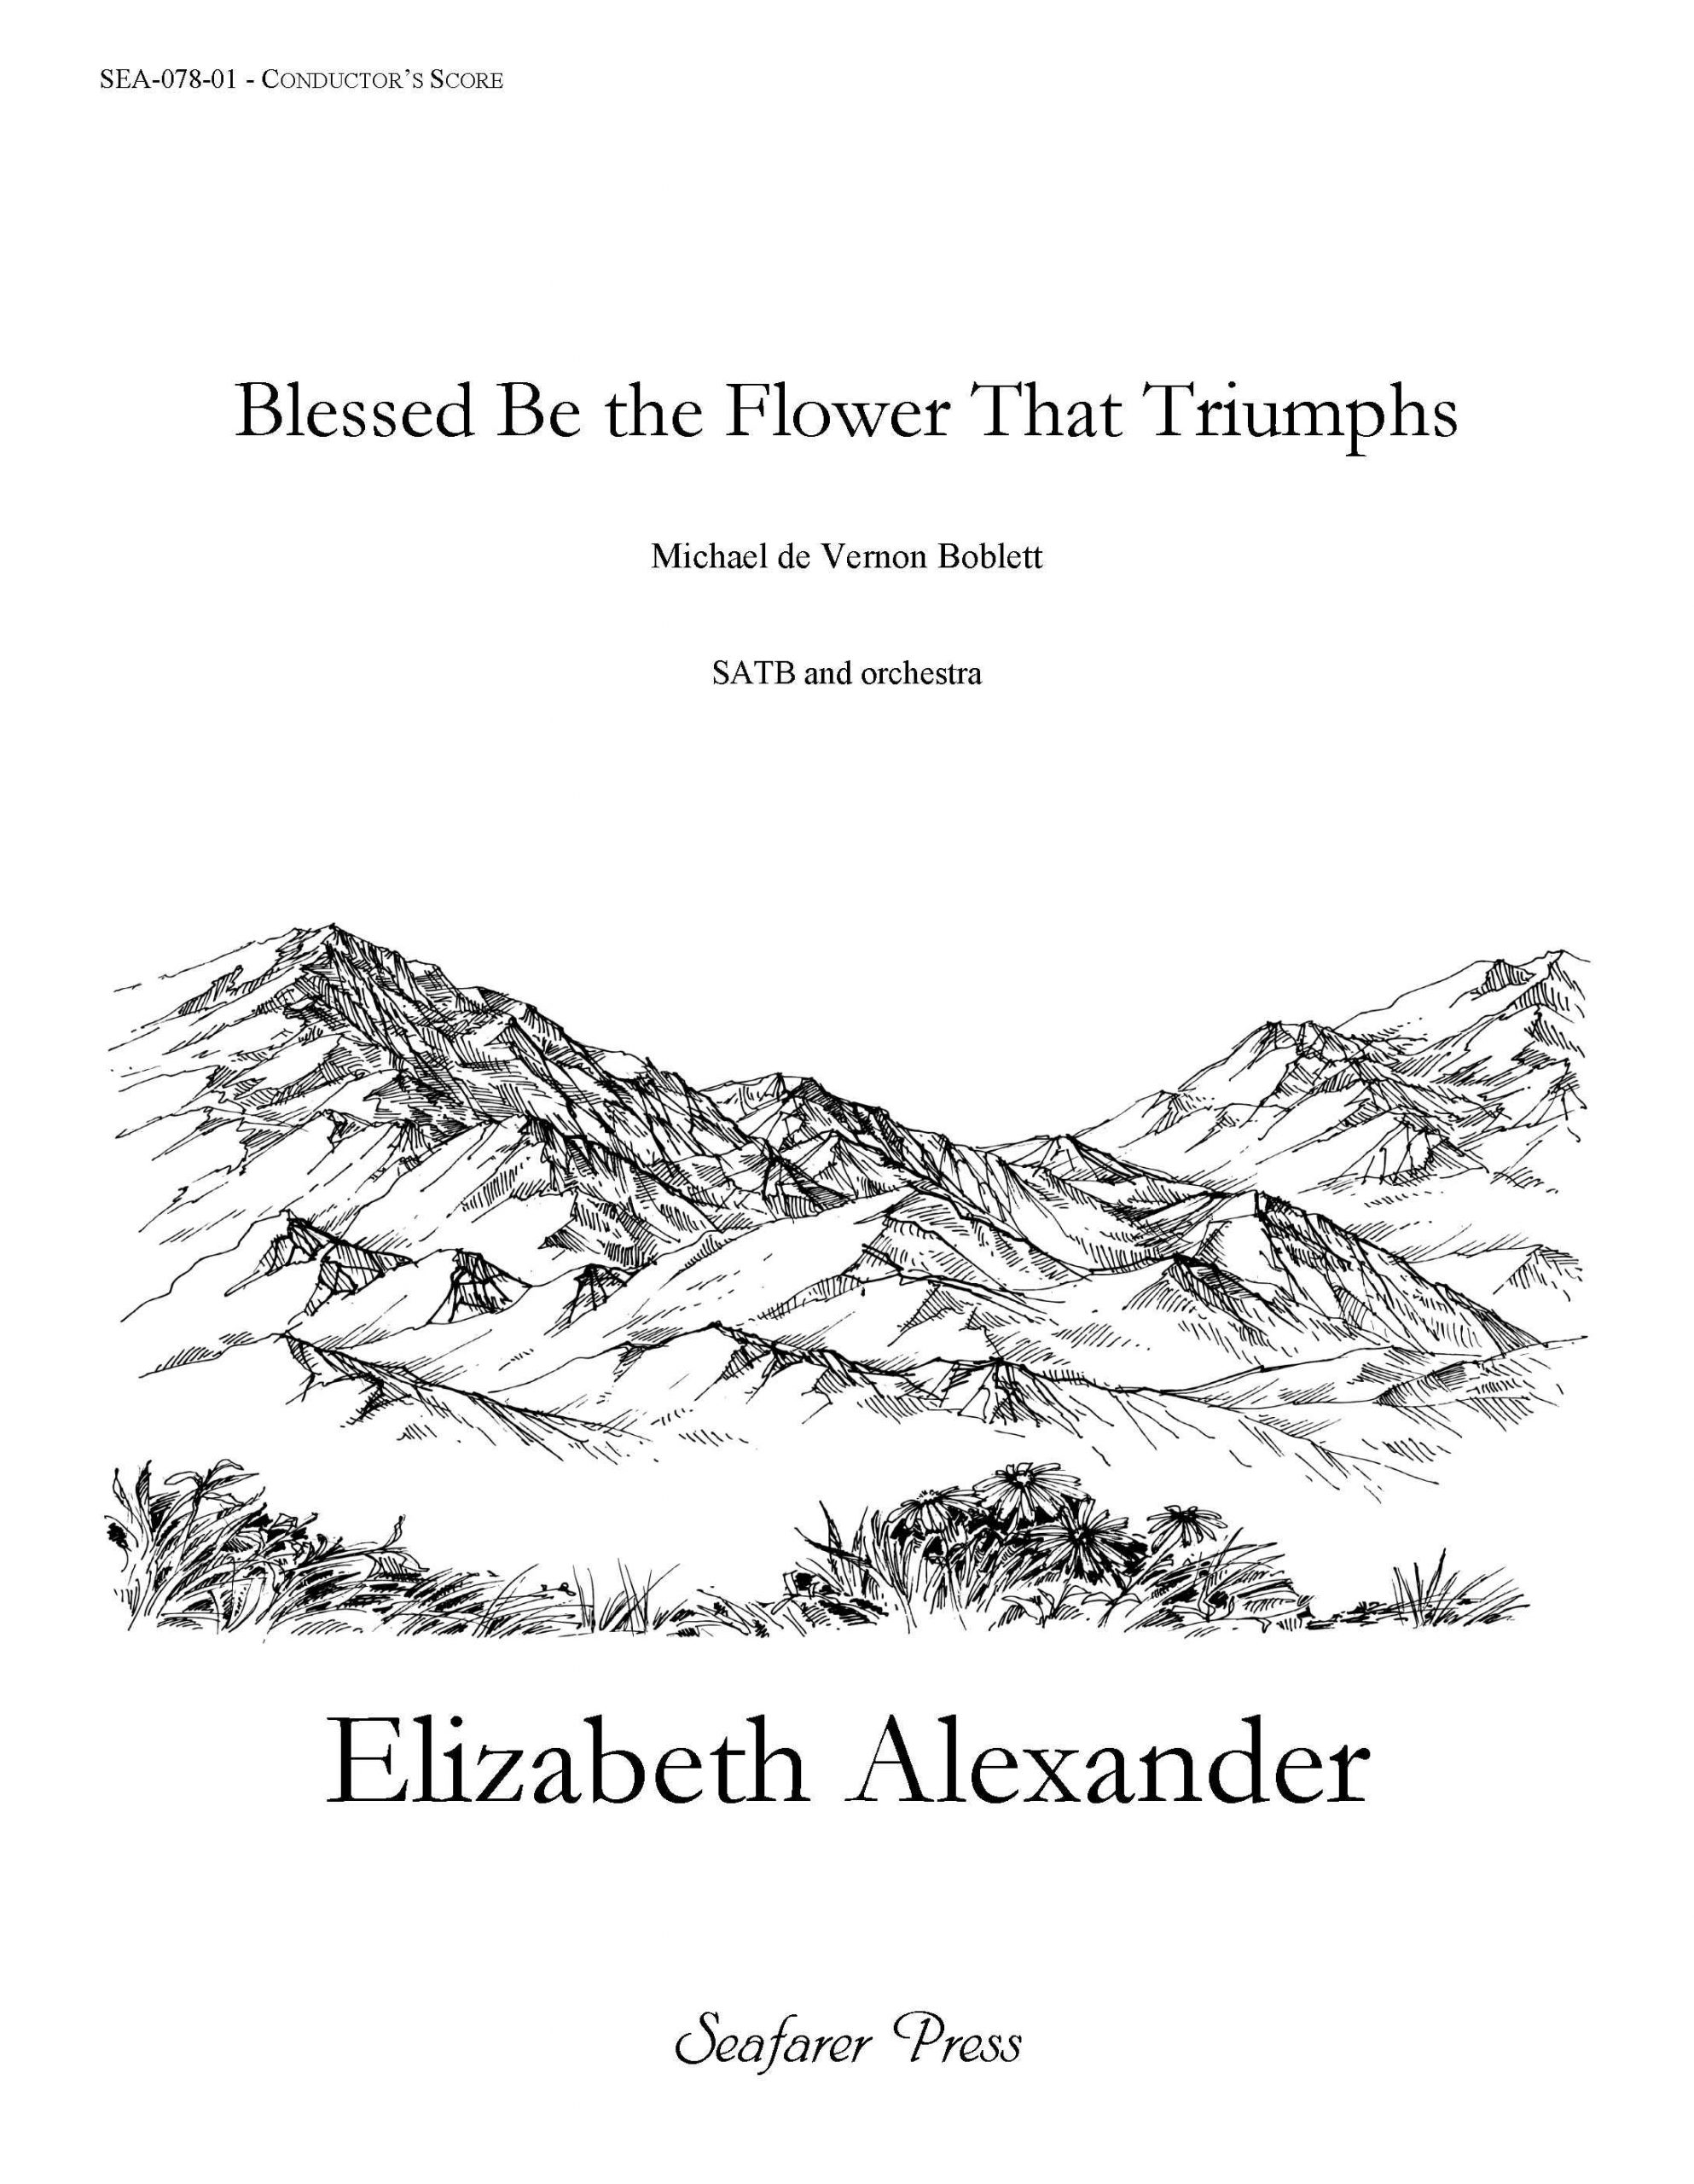 SEA-078-01 - Blessed Be the Flower That Triumphs